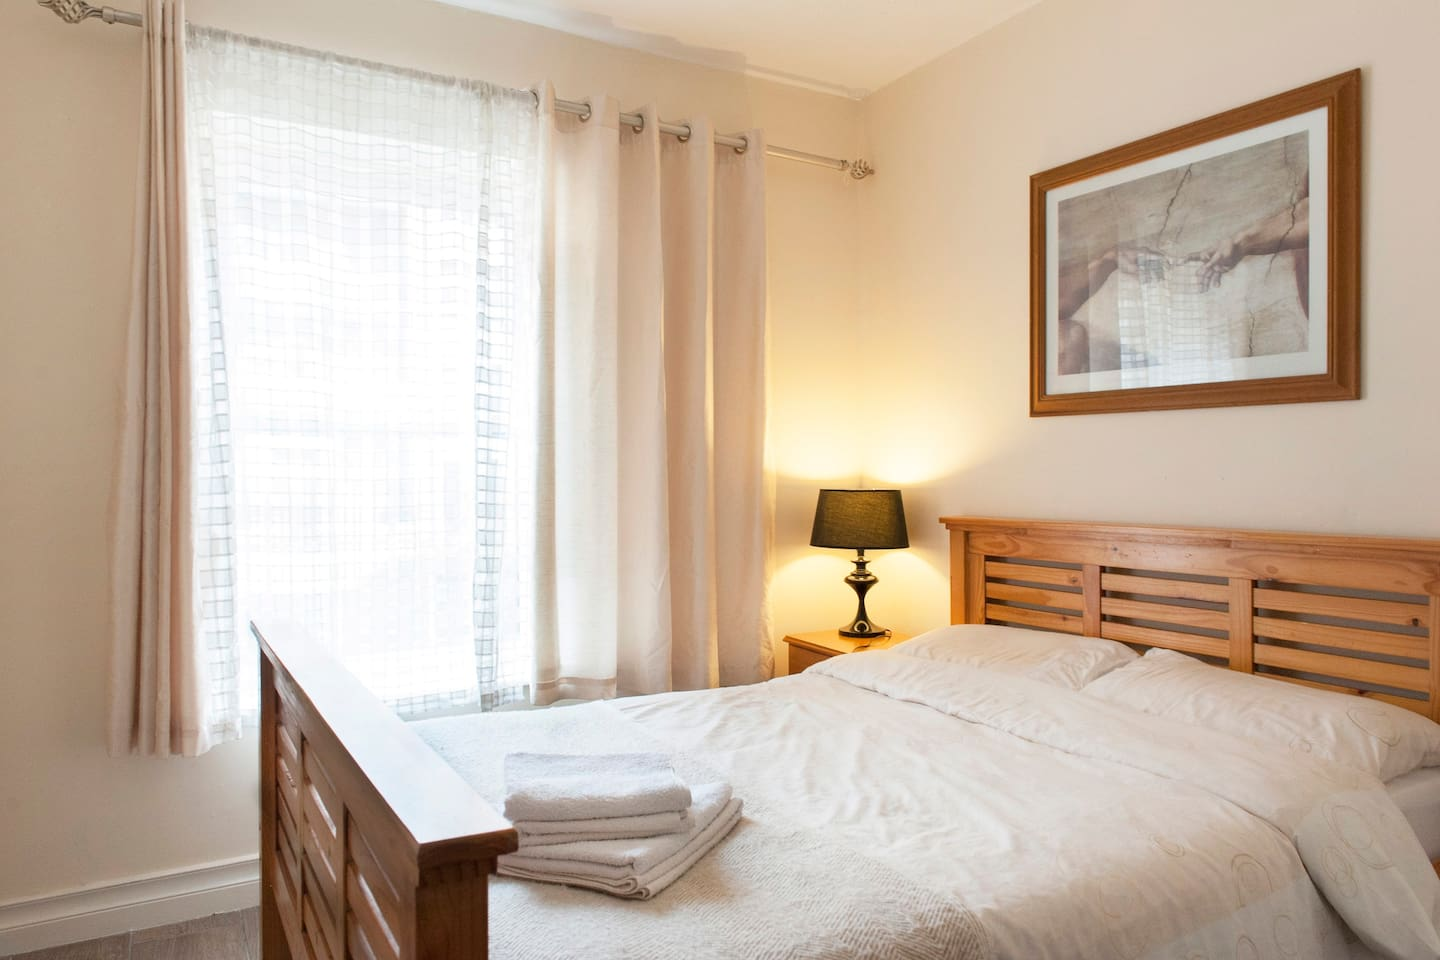 Double bed in bedroom makes your stay comfortable.